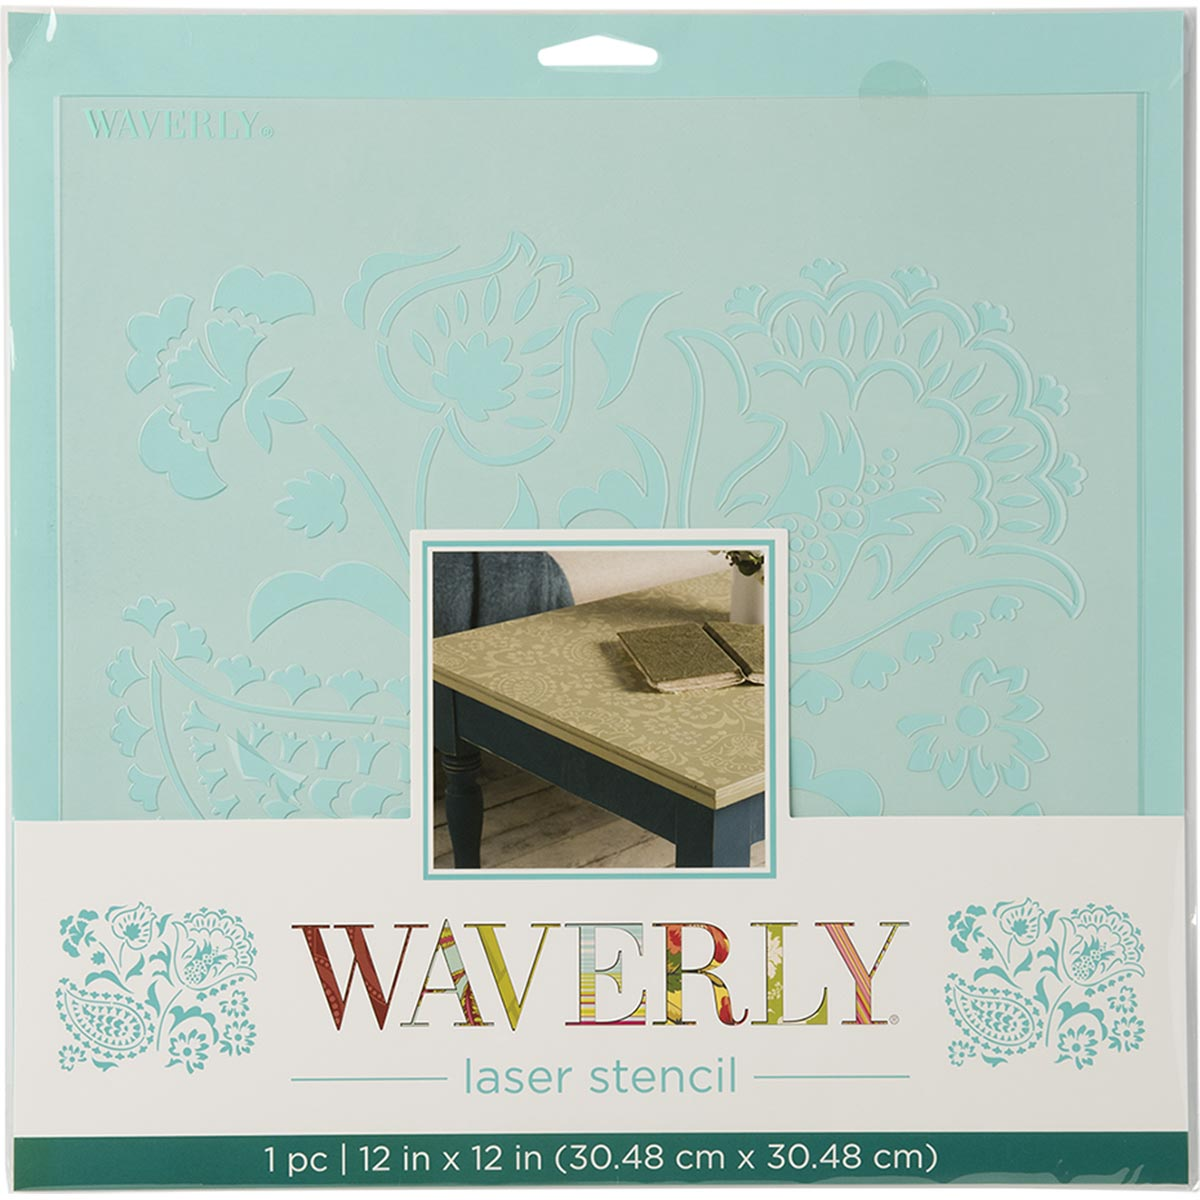 Waverly ® Laser Stencils - Siren Song, 12